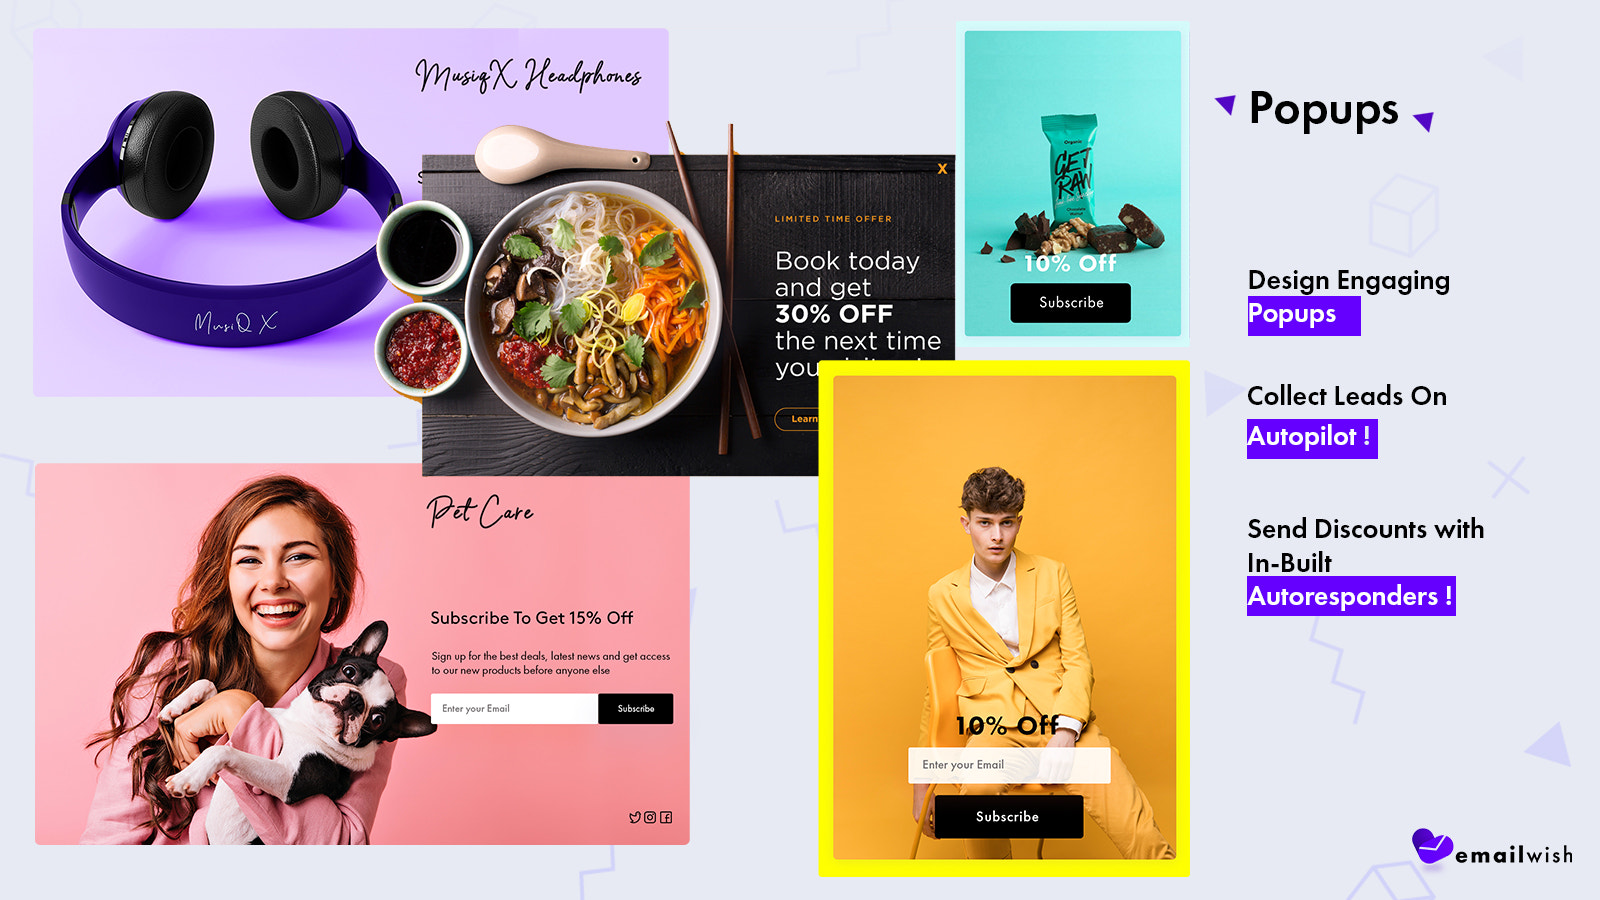 Email Marketing, abandoned cart, popups, chats & reviews shopify